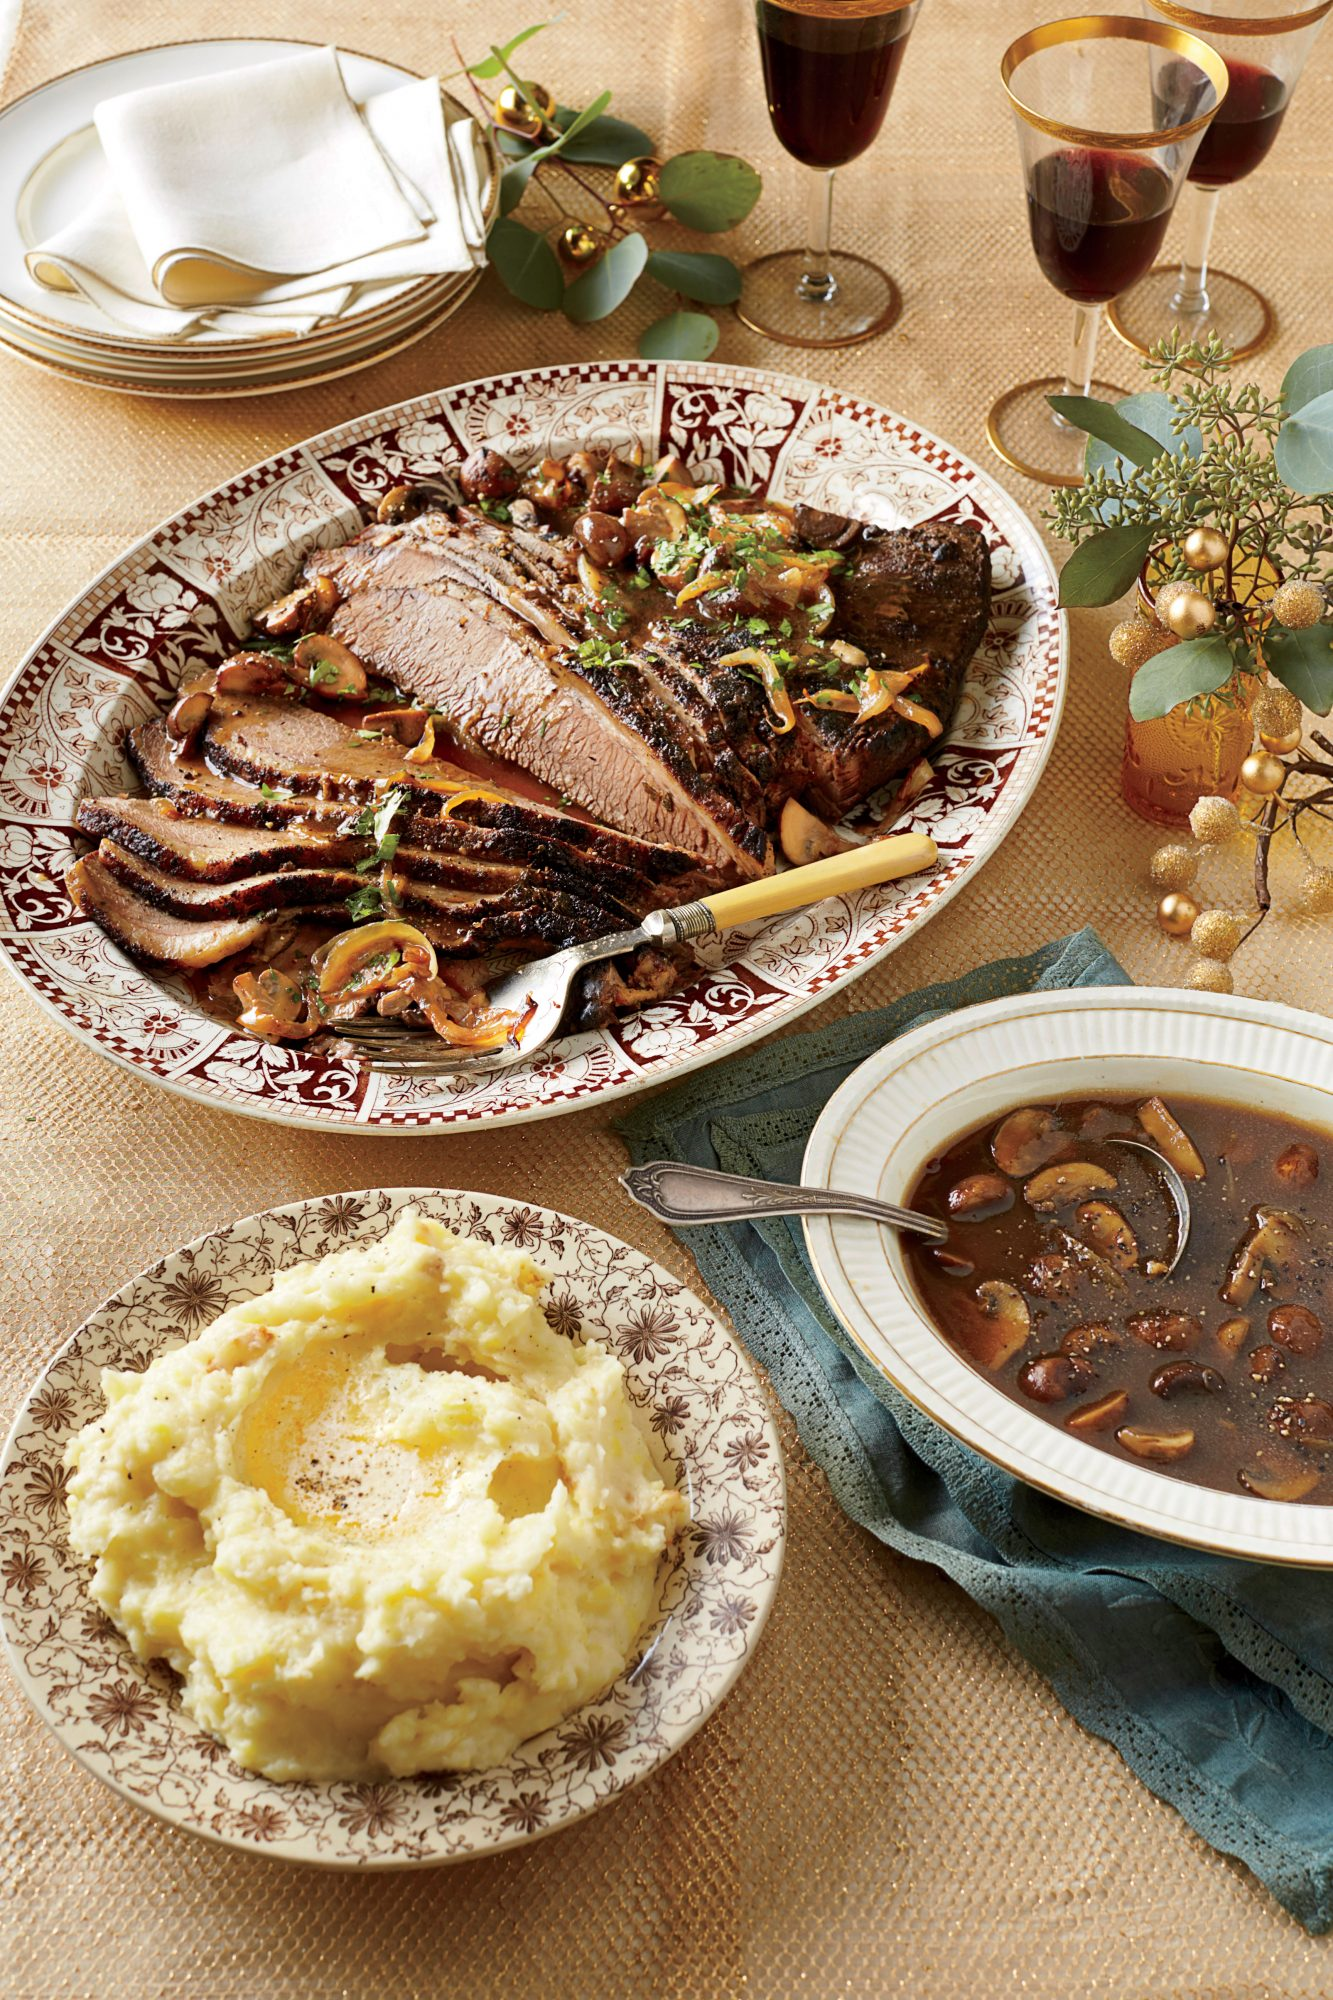 Brisket with Mushroom-and-Onion Gravy